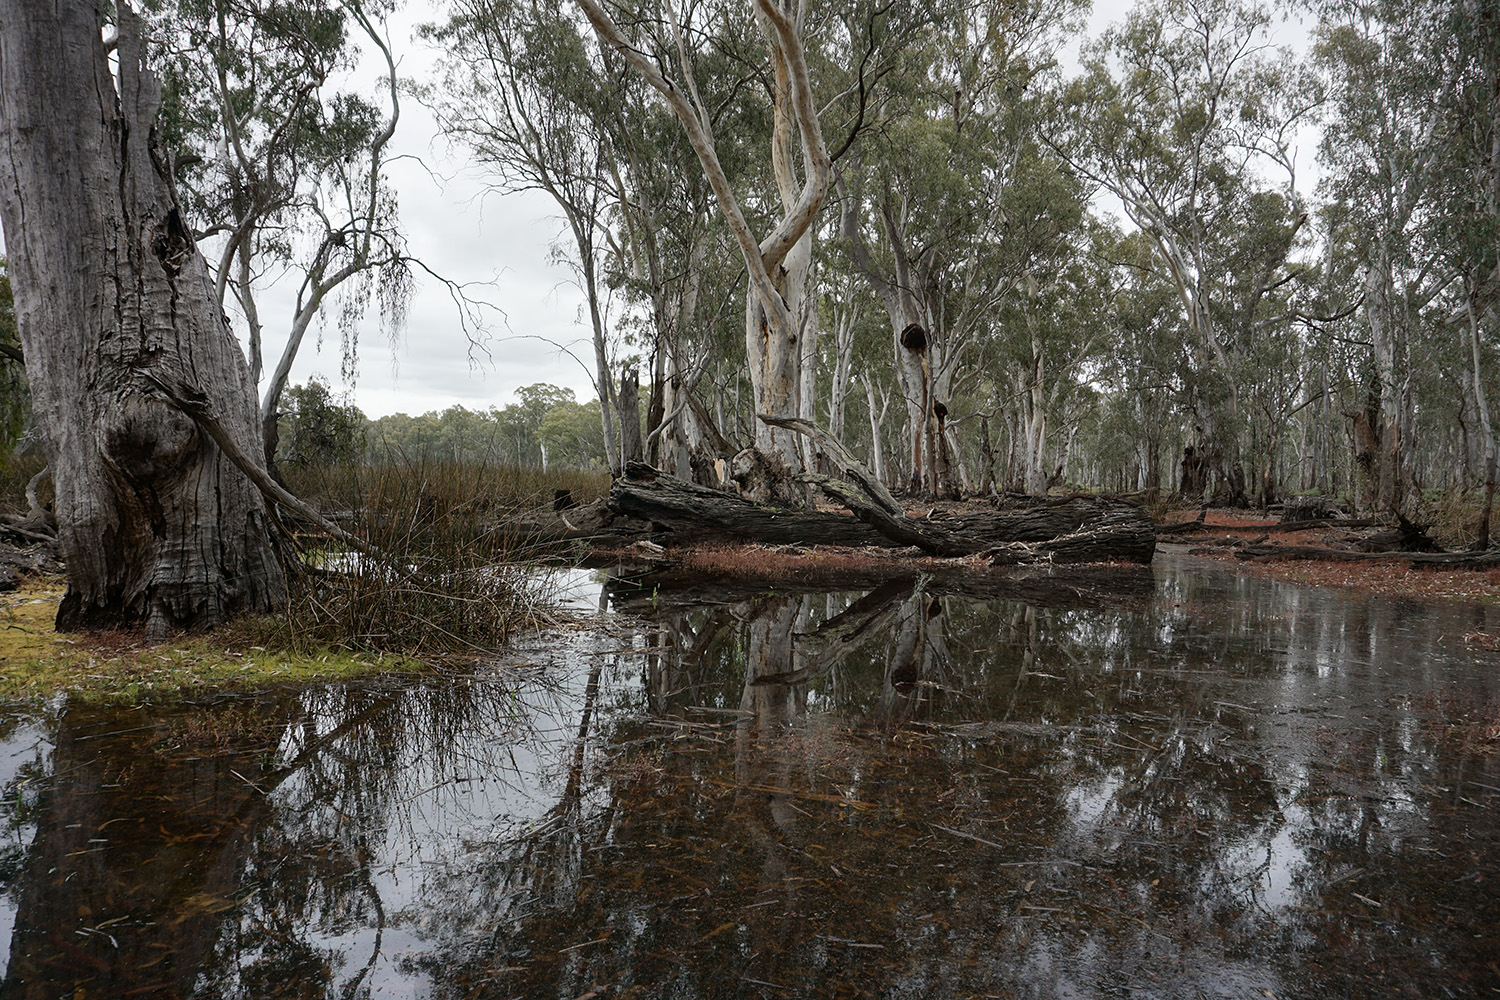 Gunbower Forest, an important area for native fish breeding and recruitment. Photo credit: Amy Russell